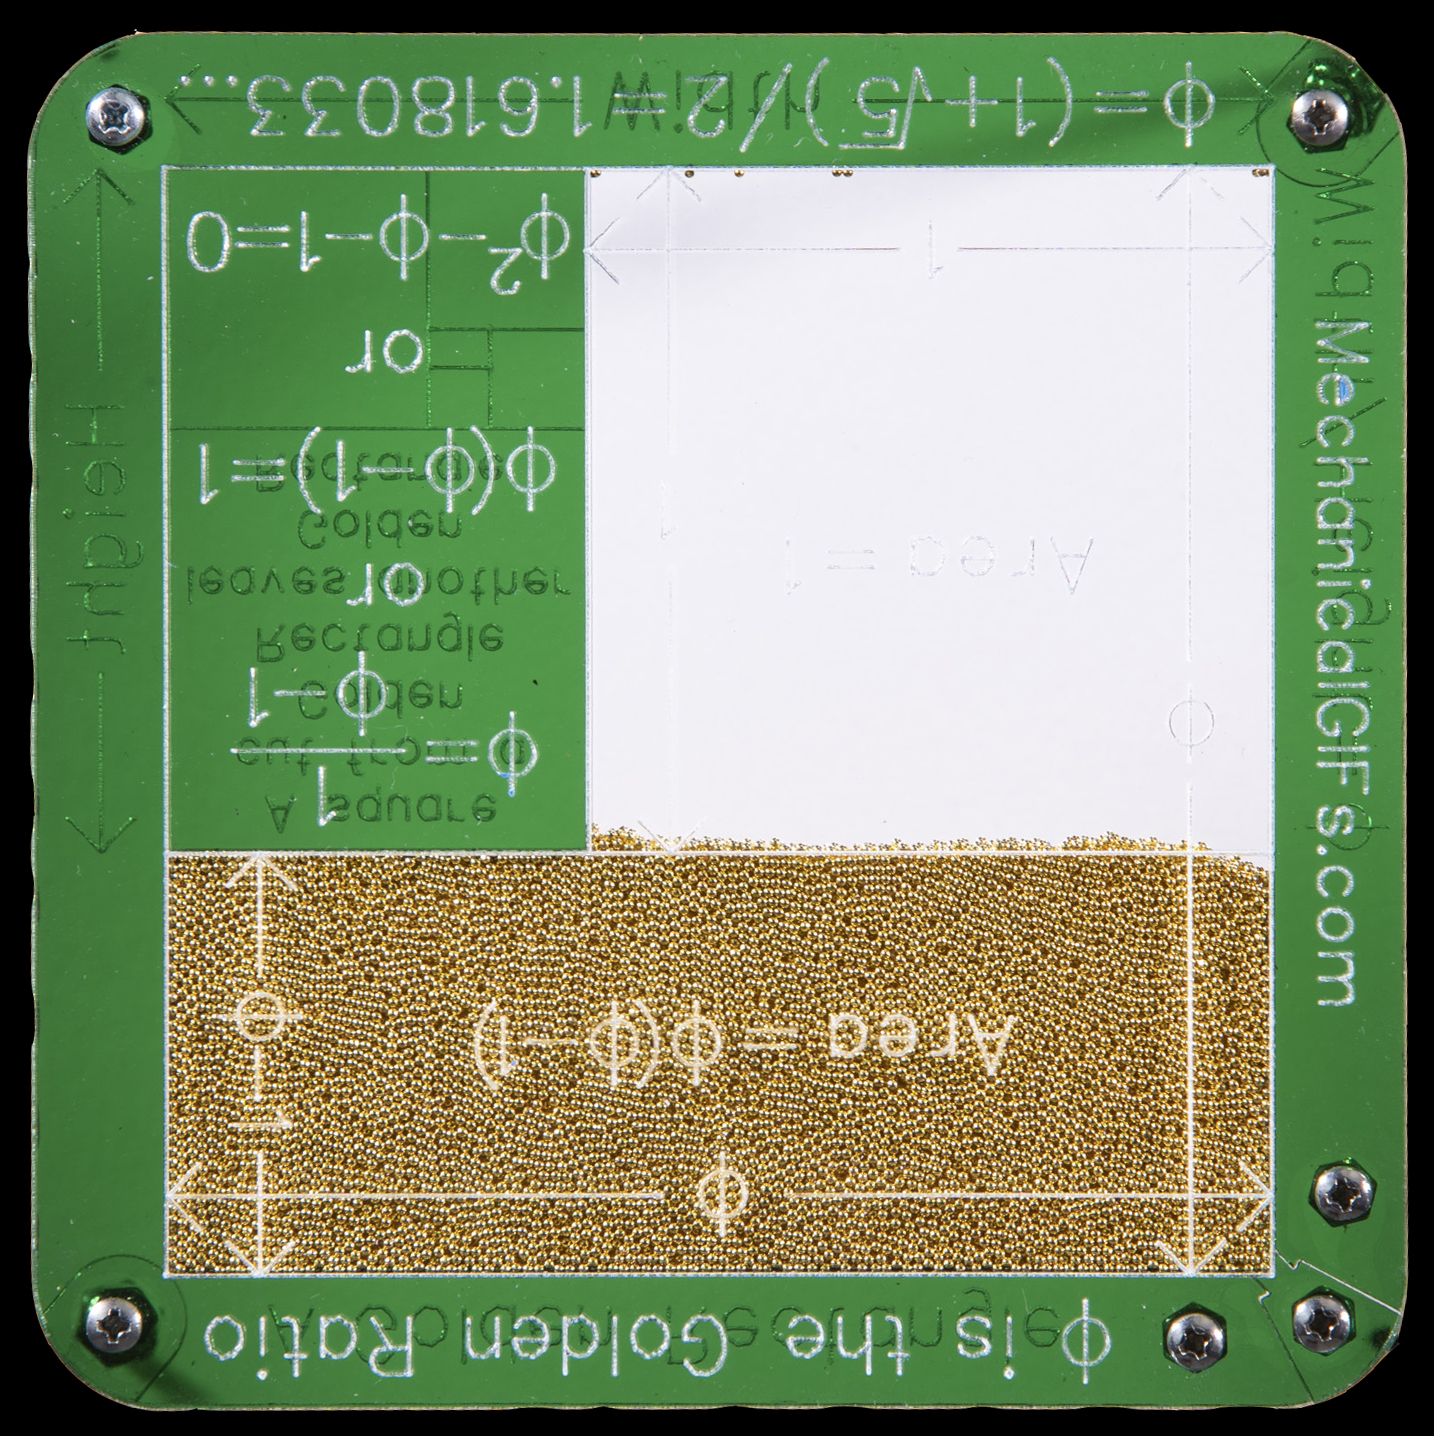 On the back side of the model the engraving shows how a golden rectangle can be split into an infinite number of squares and smaller golden rectangles.